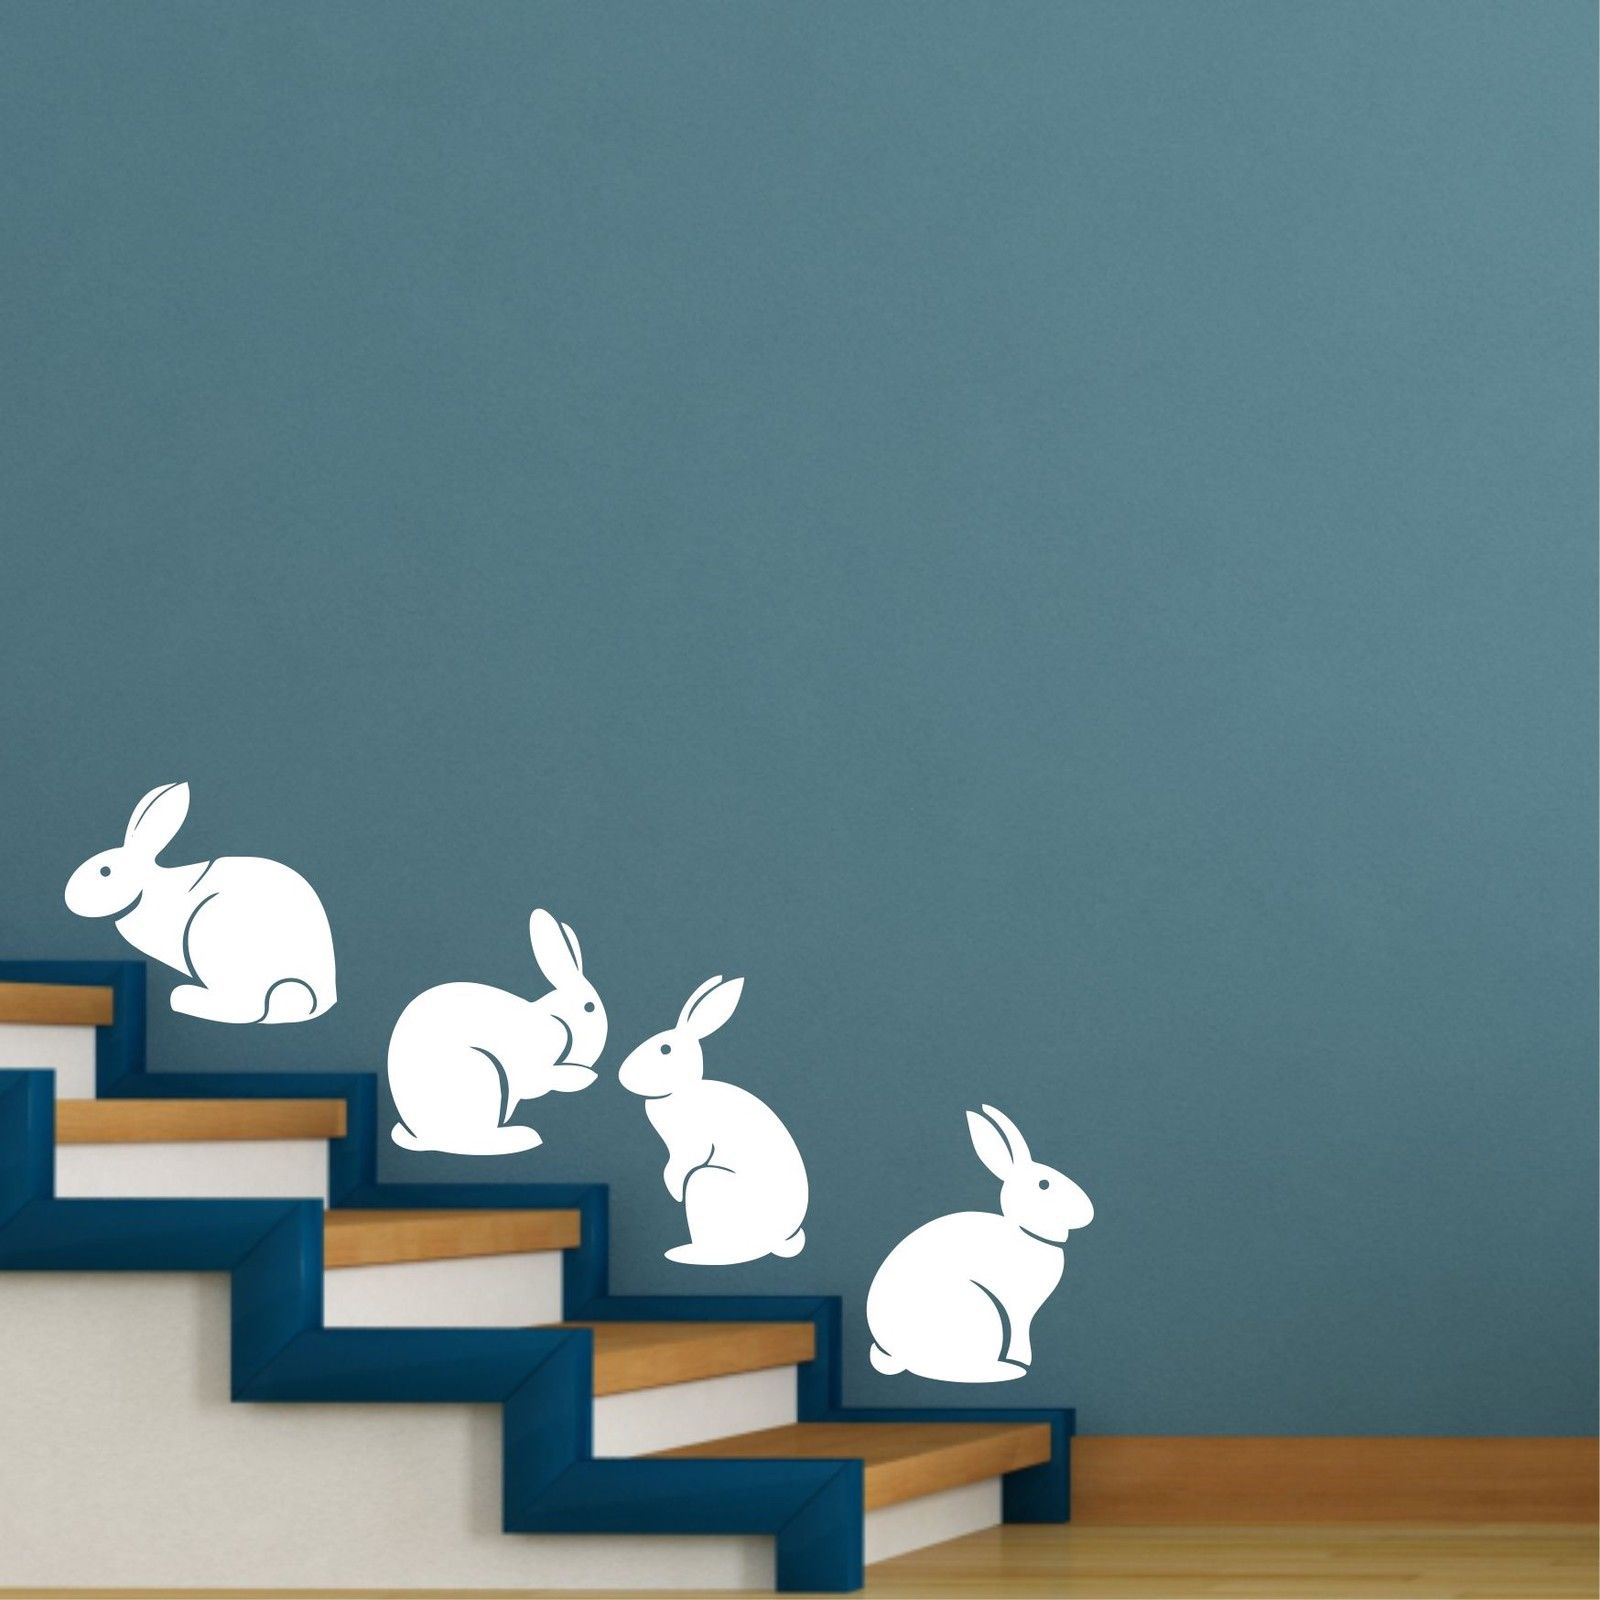 A007 Cute Bunny Rabbits Wall Sticker Baby Nursery Rabbits Wall Decal - Home Decor